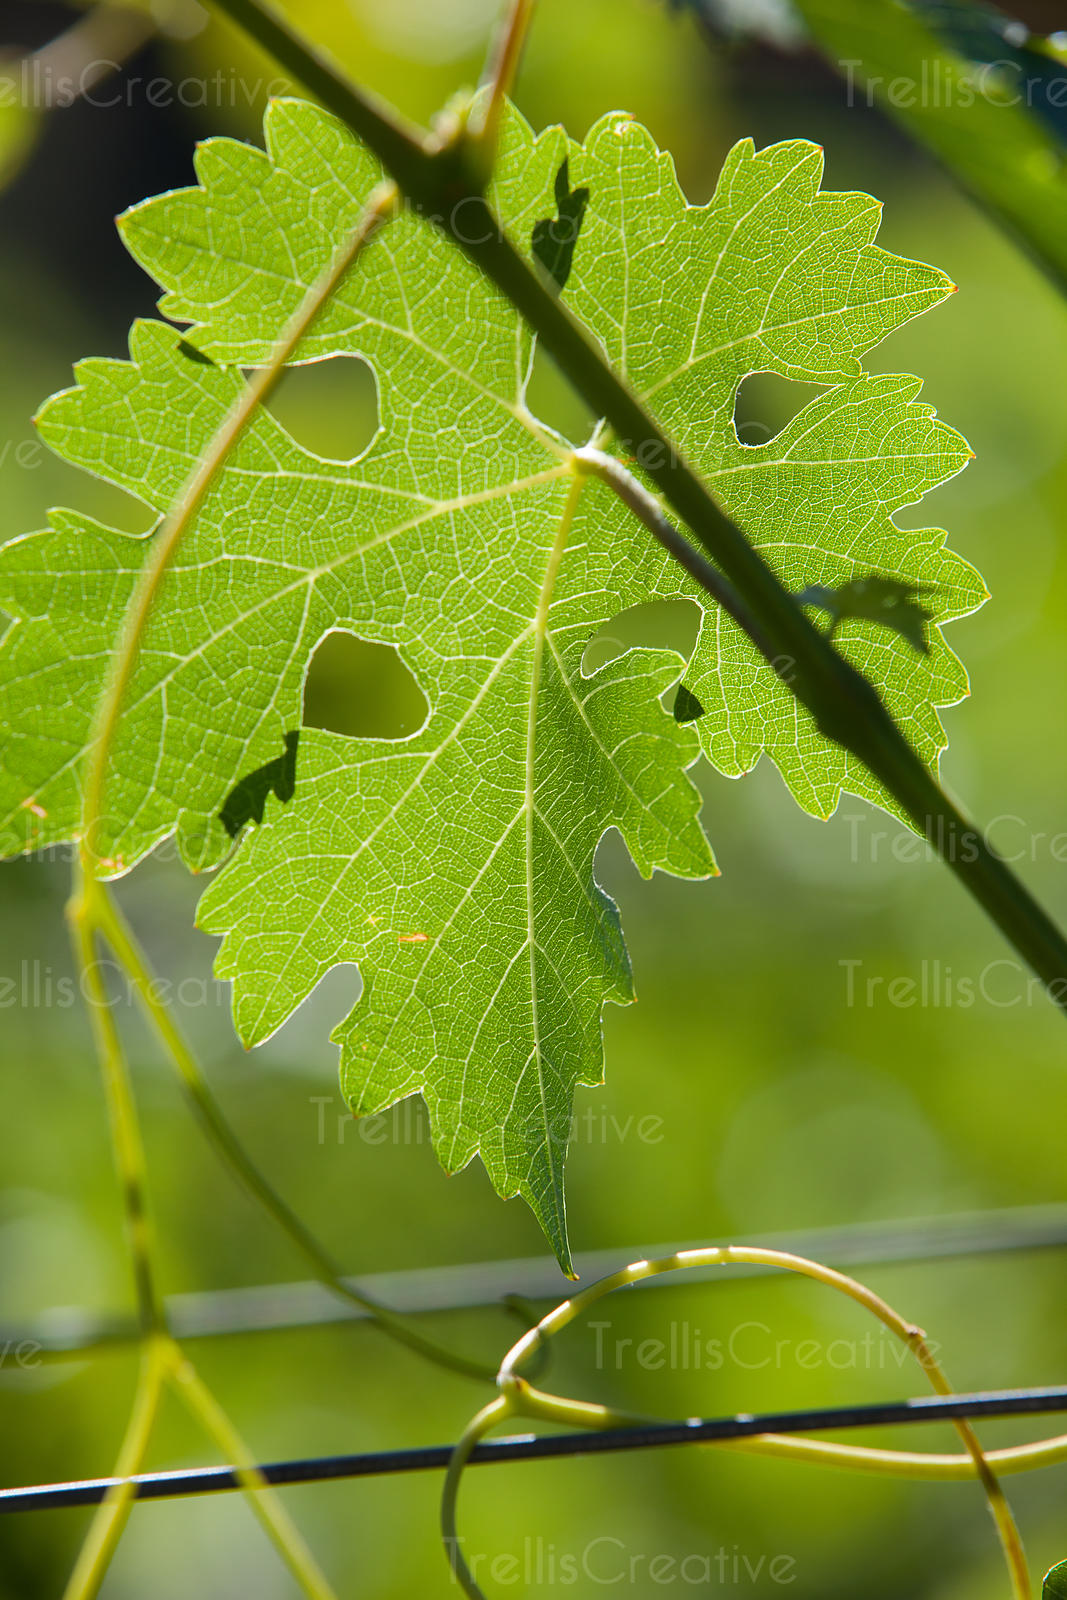 Close-up of a grape leaf on the vine.